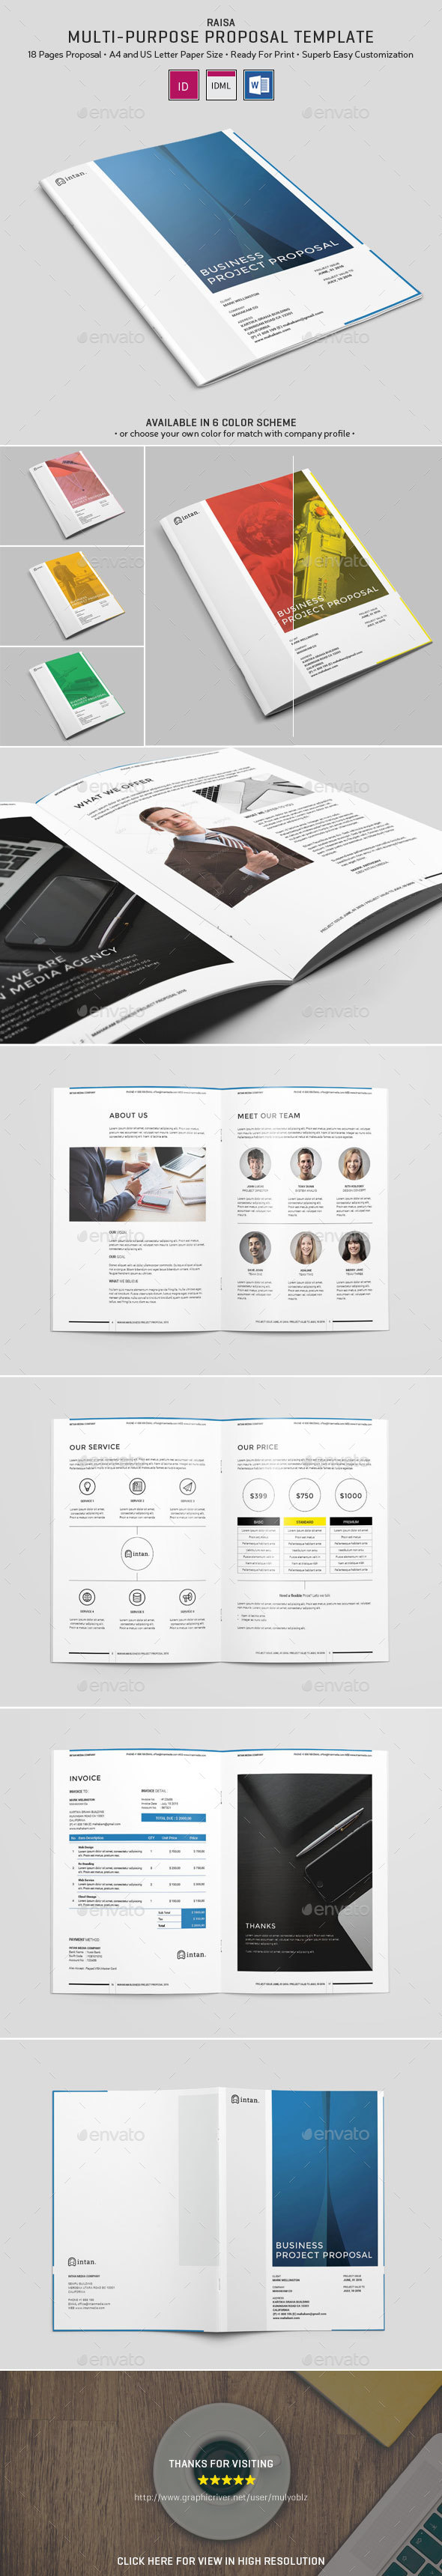 Raisa - Proposal Template - Proposals & Invoices Stationery